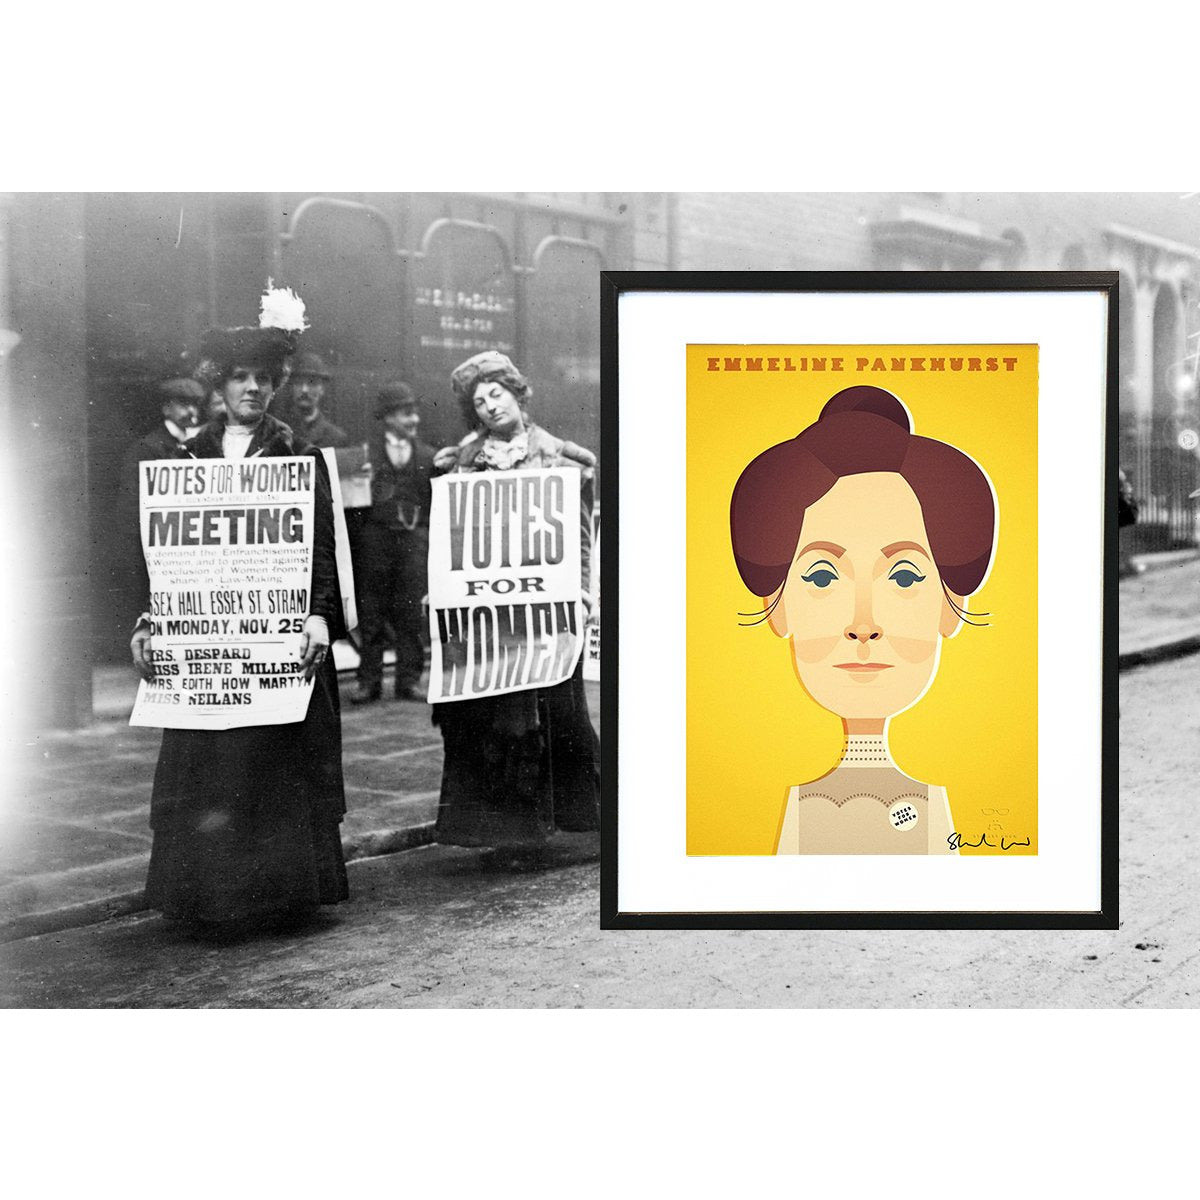 Emmeline Pankhurst by Stanley Chow - Signed and stamped fine art print - Egoiste Gallery - Art Gallery in Manchester City Centre